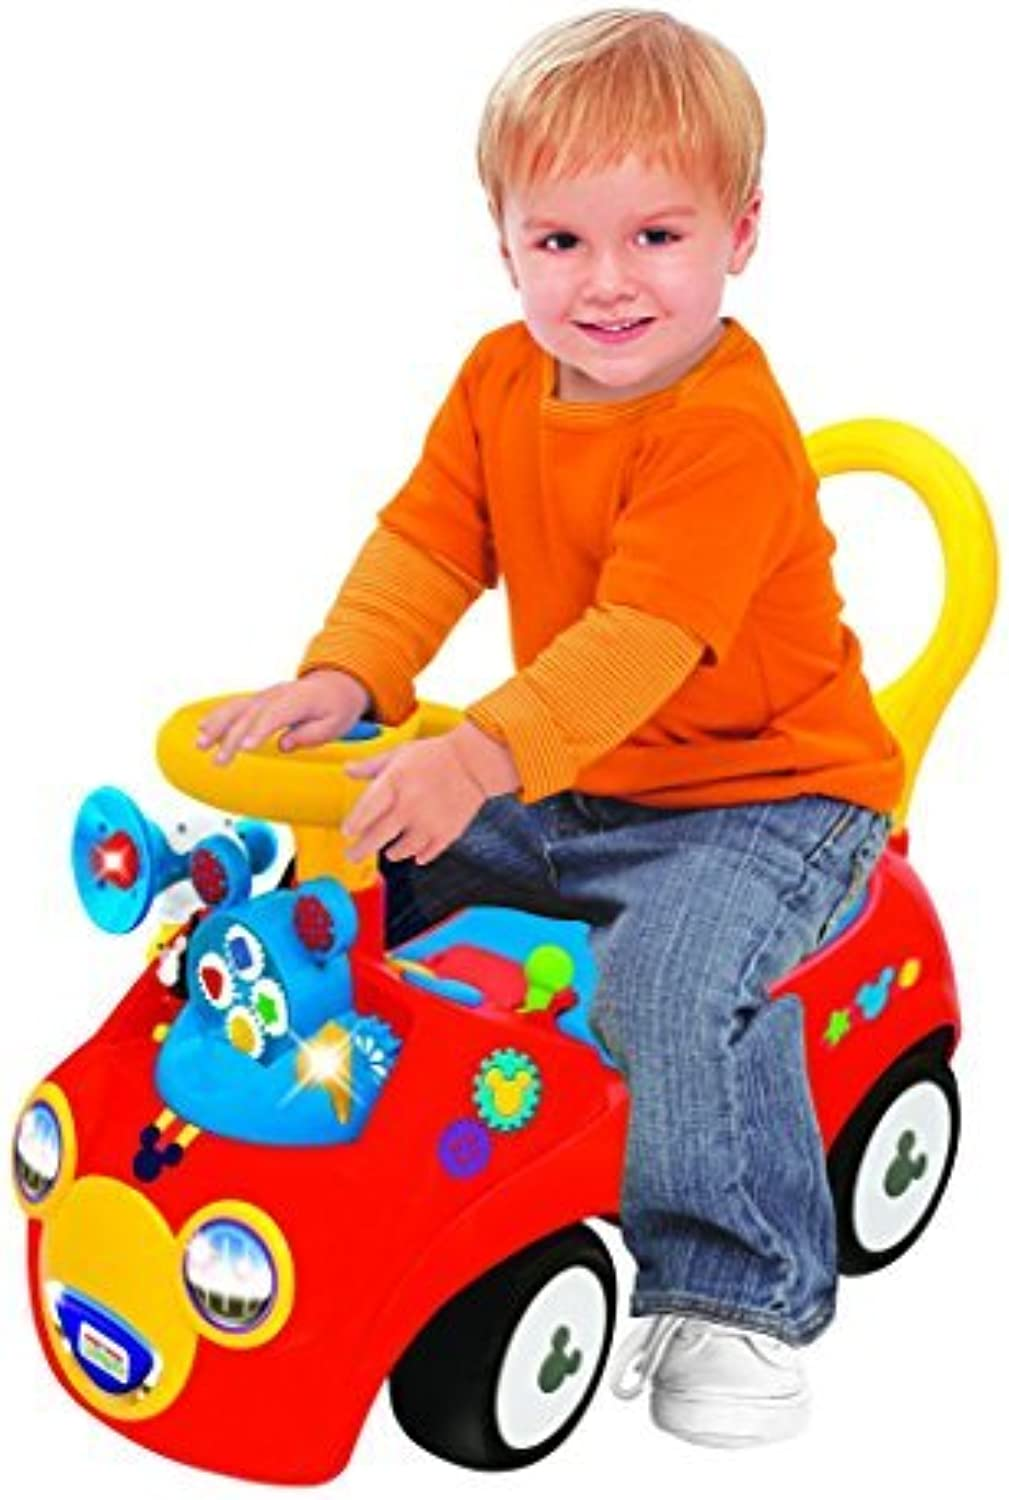 Disney 4-in-1 Mickey Activity Gears Ride On by Disney